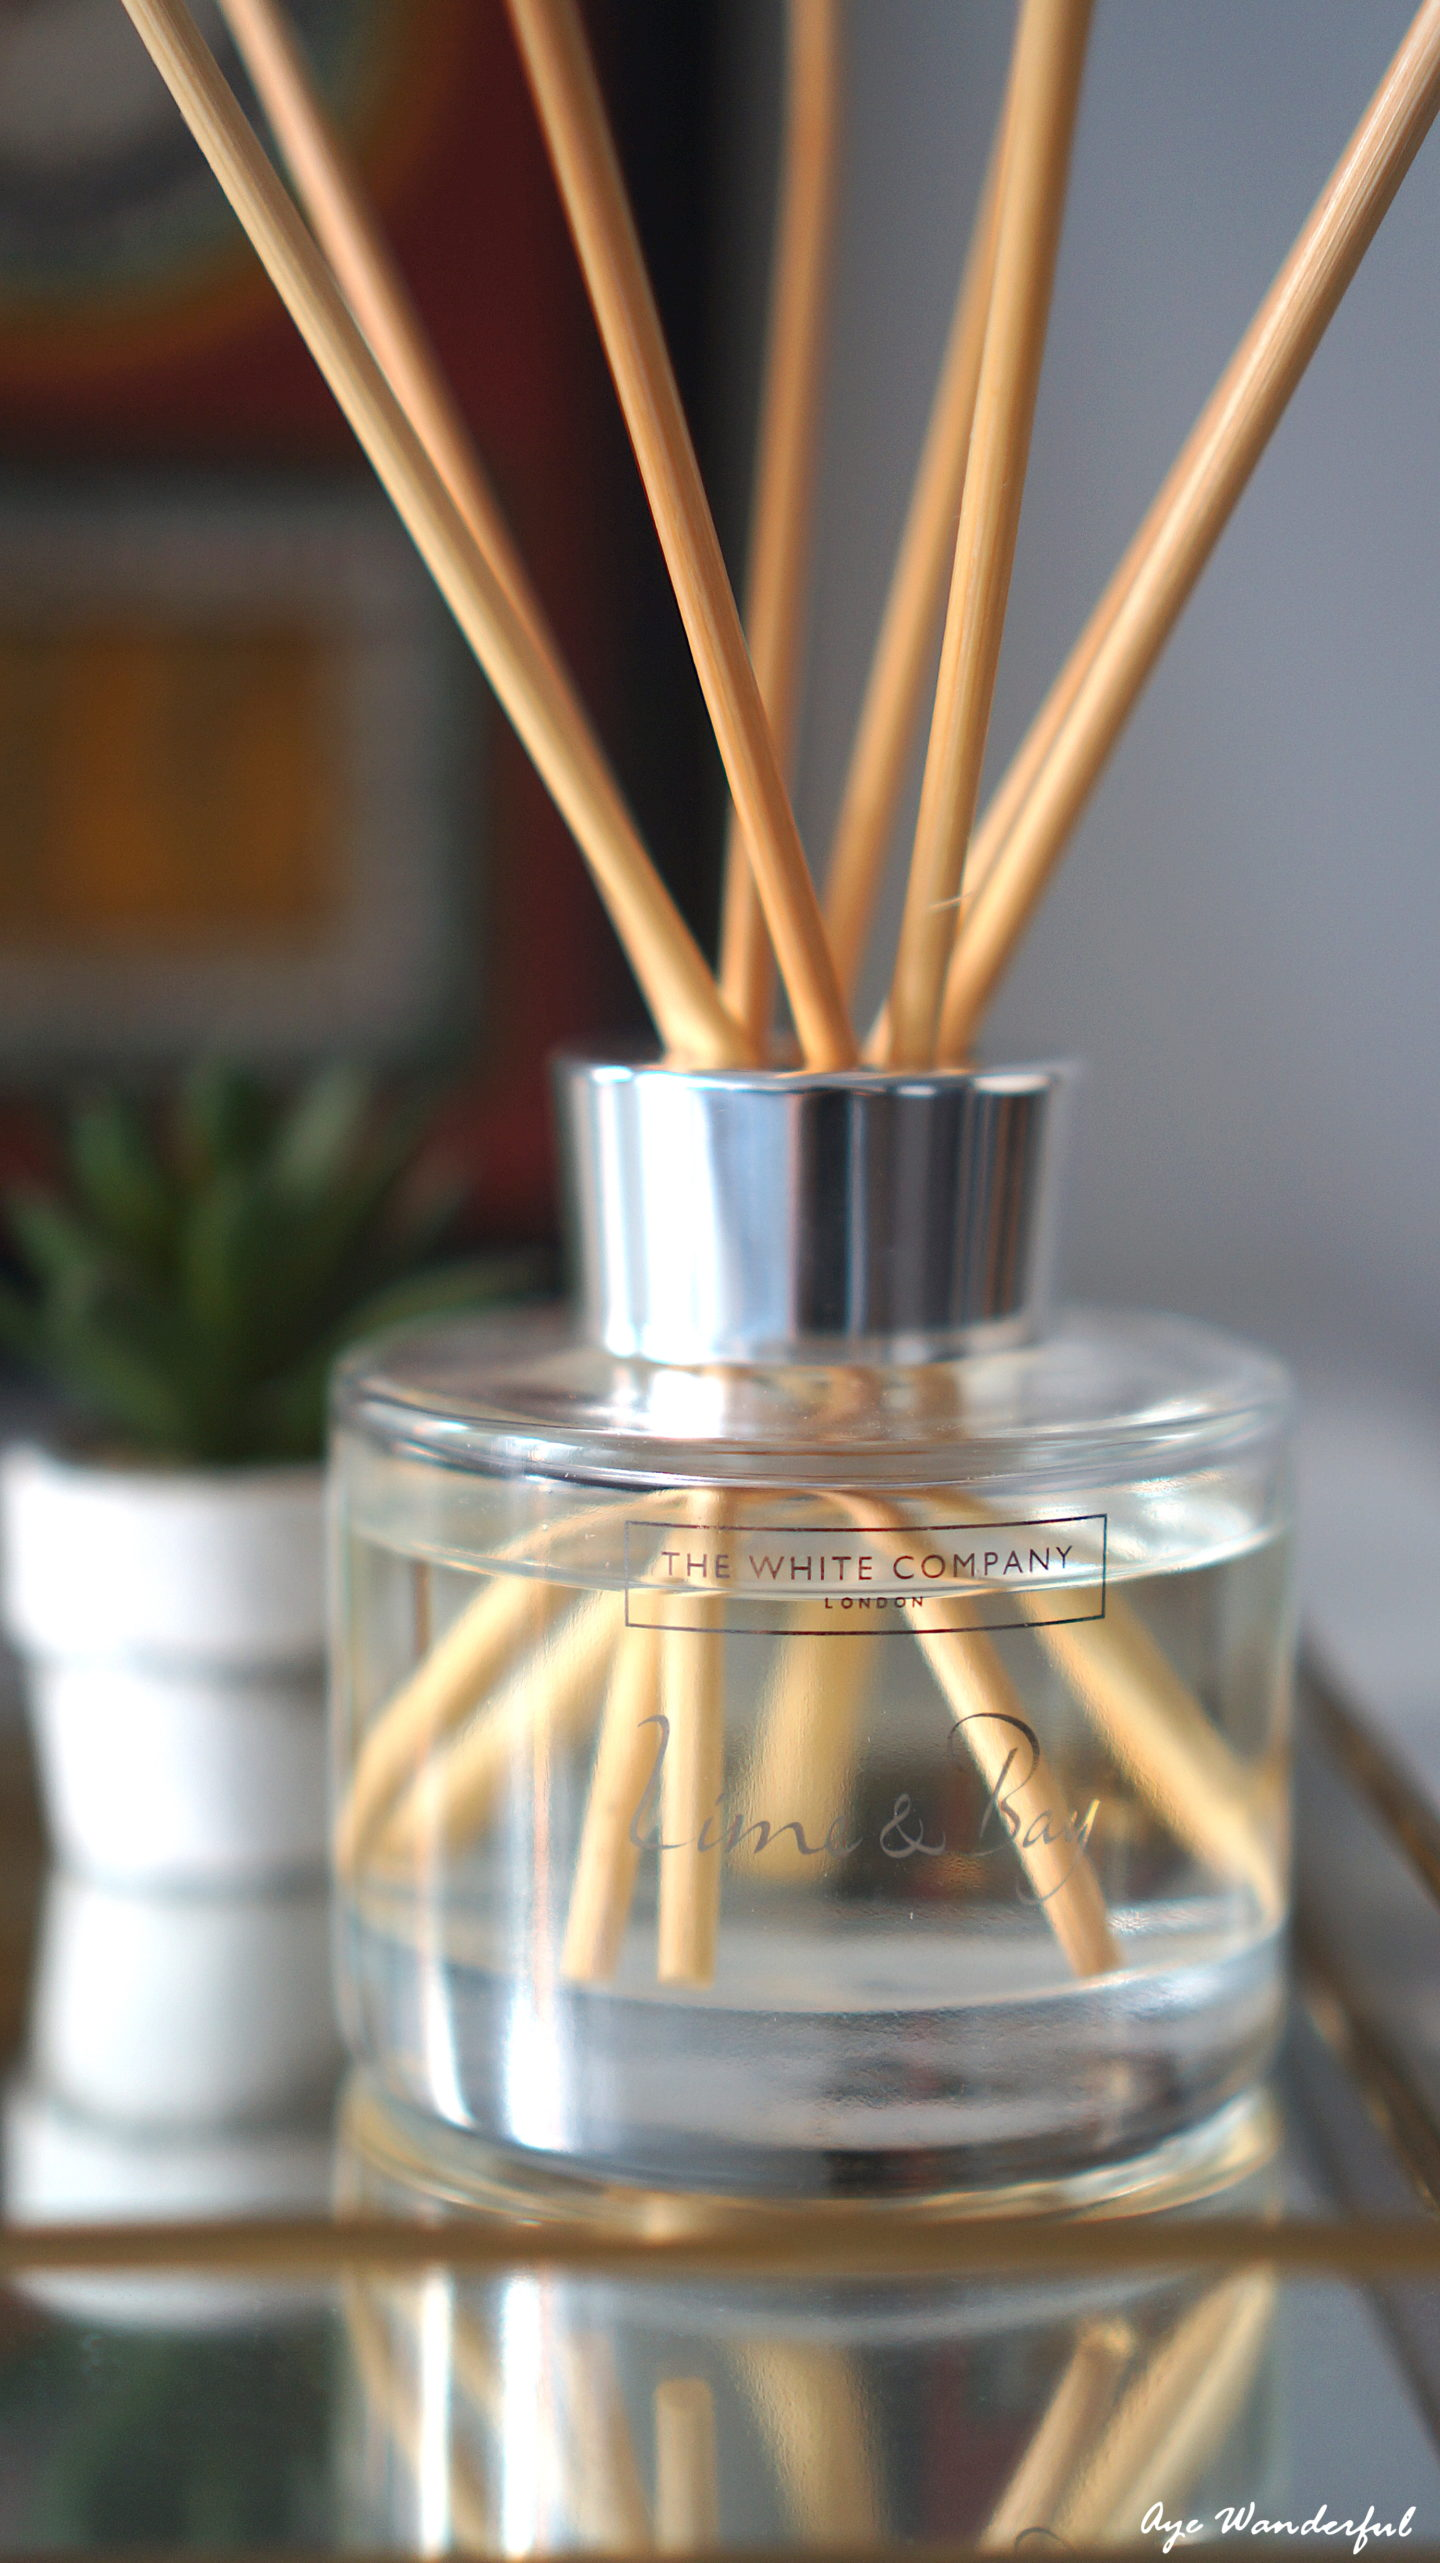 Lime and Bay Reed Diffuser | The White Company | Five Good Things | August | www.ayewanderful.com